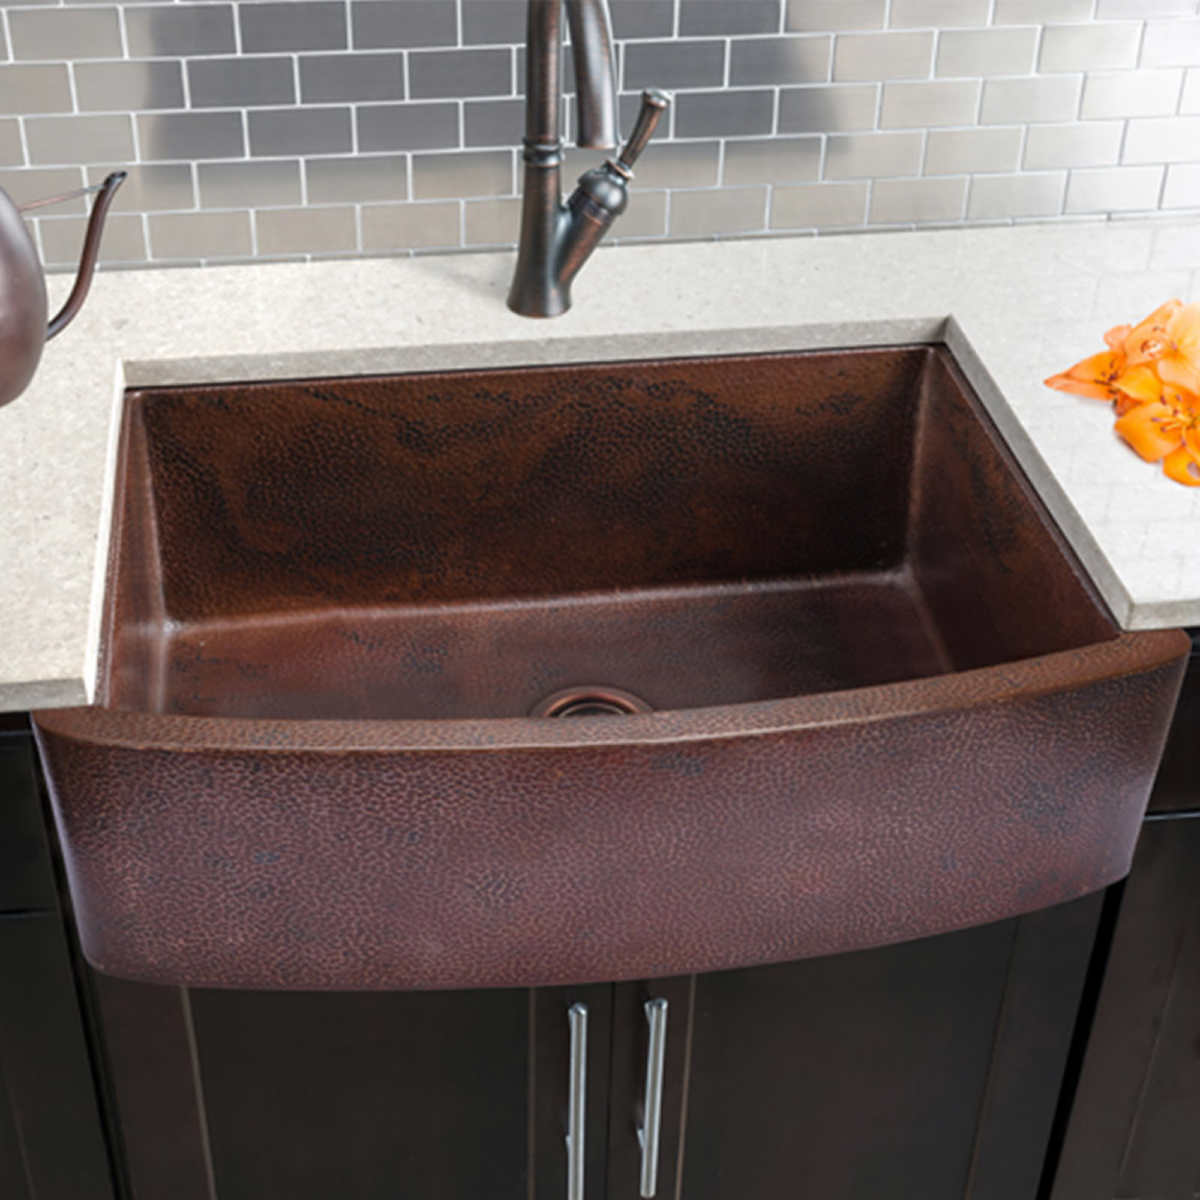 hahn copper curved front single bowl farmhouse sink - Kitchen Sinks Pictures